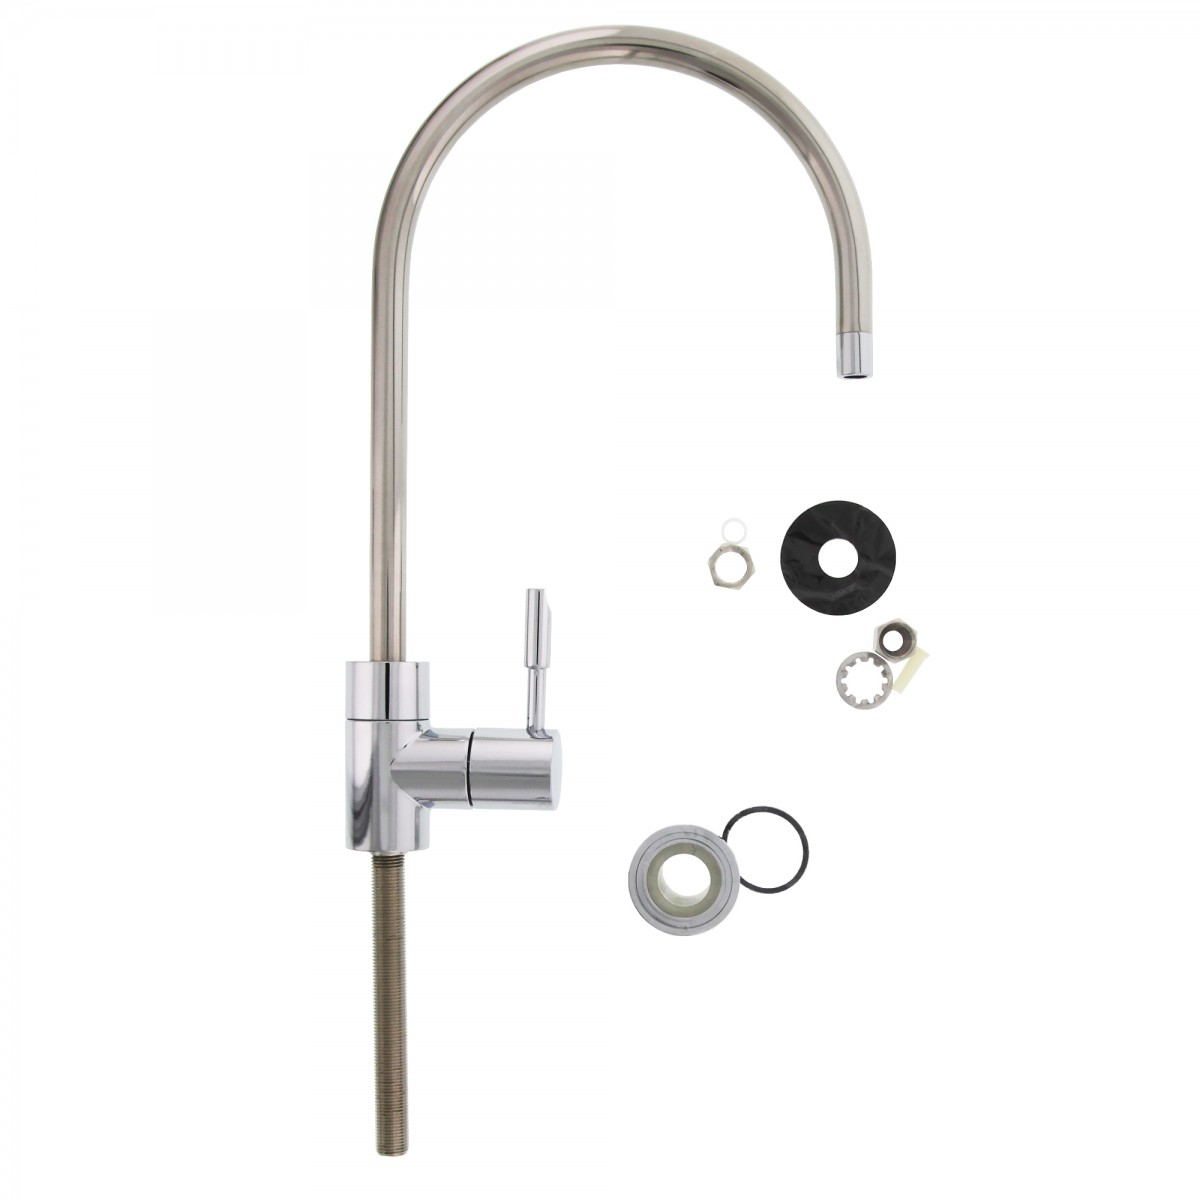 satin single filtration faucets nickel magellan kingston handle water filter faucet product brass